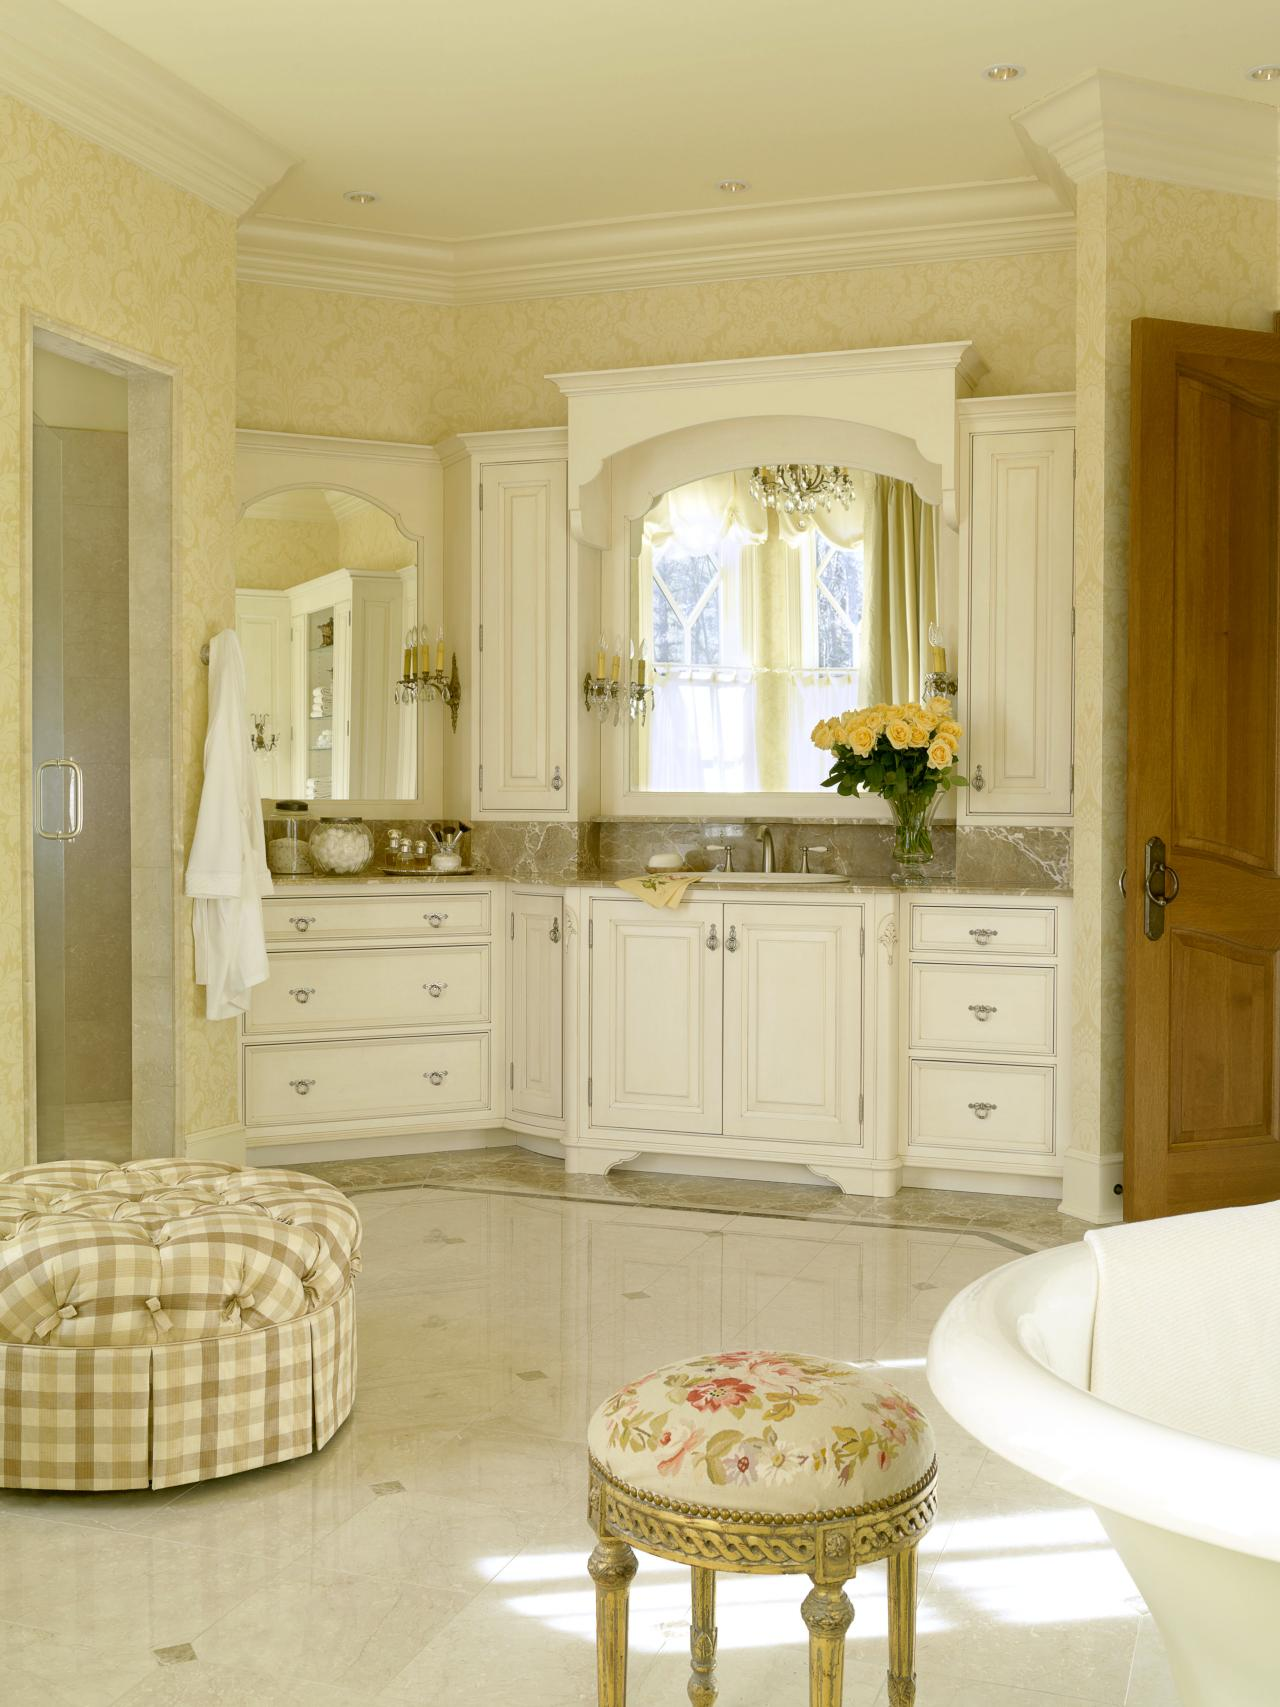 French country bathroom decor - French Country Bathroom Design Pictures Ideas